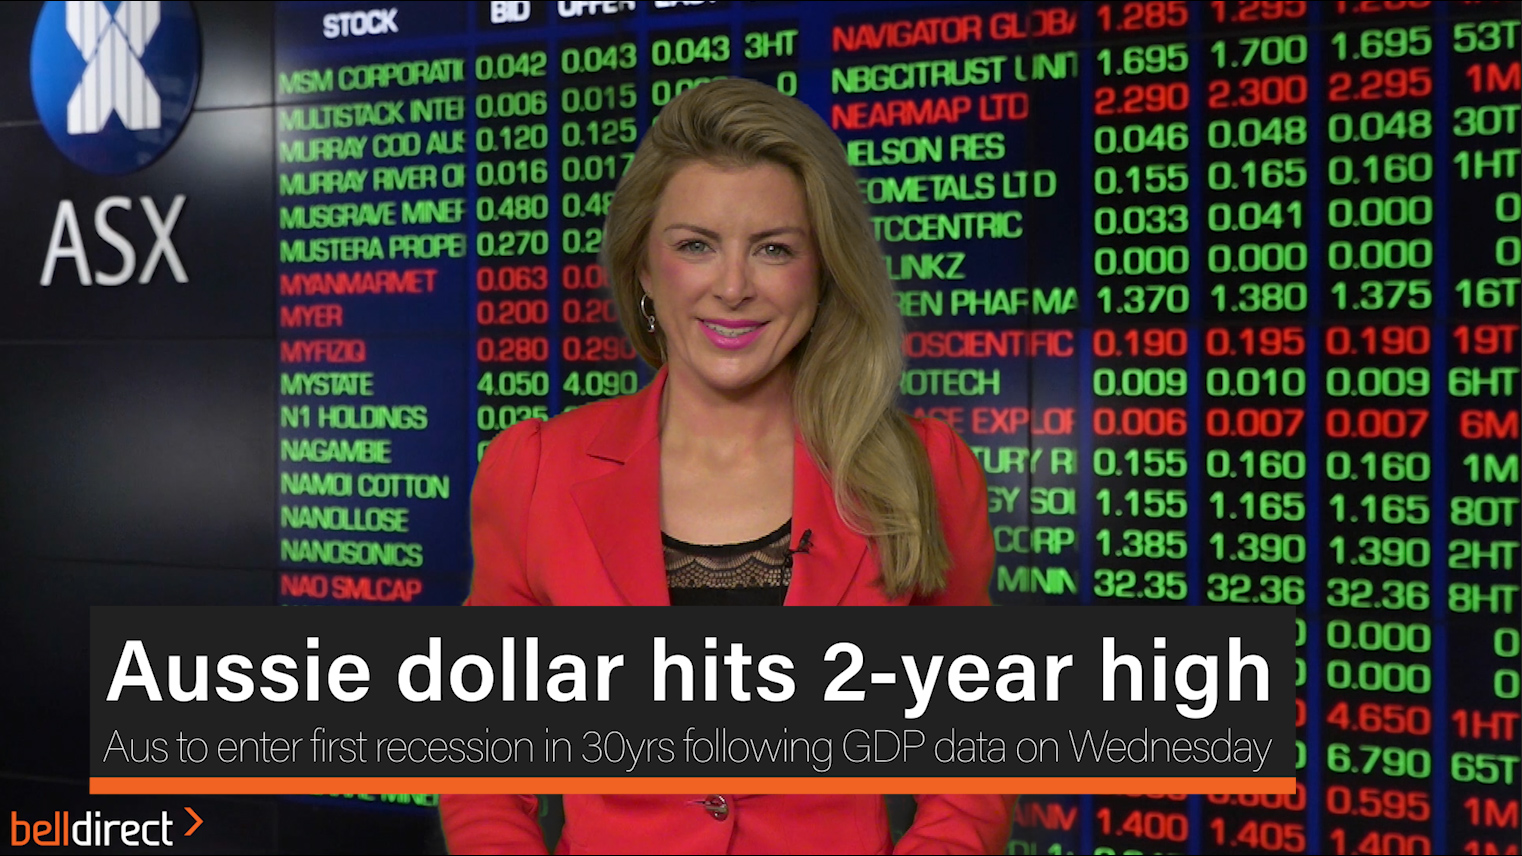 Aussie dollar hits 2-year high